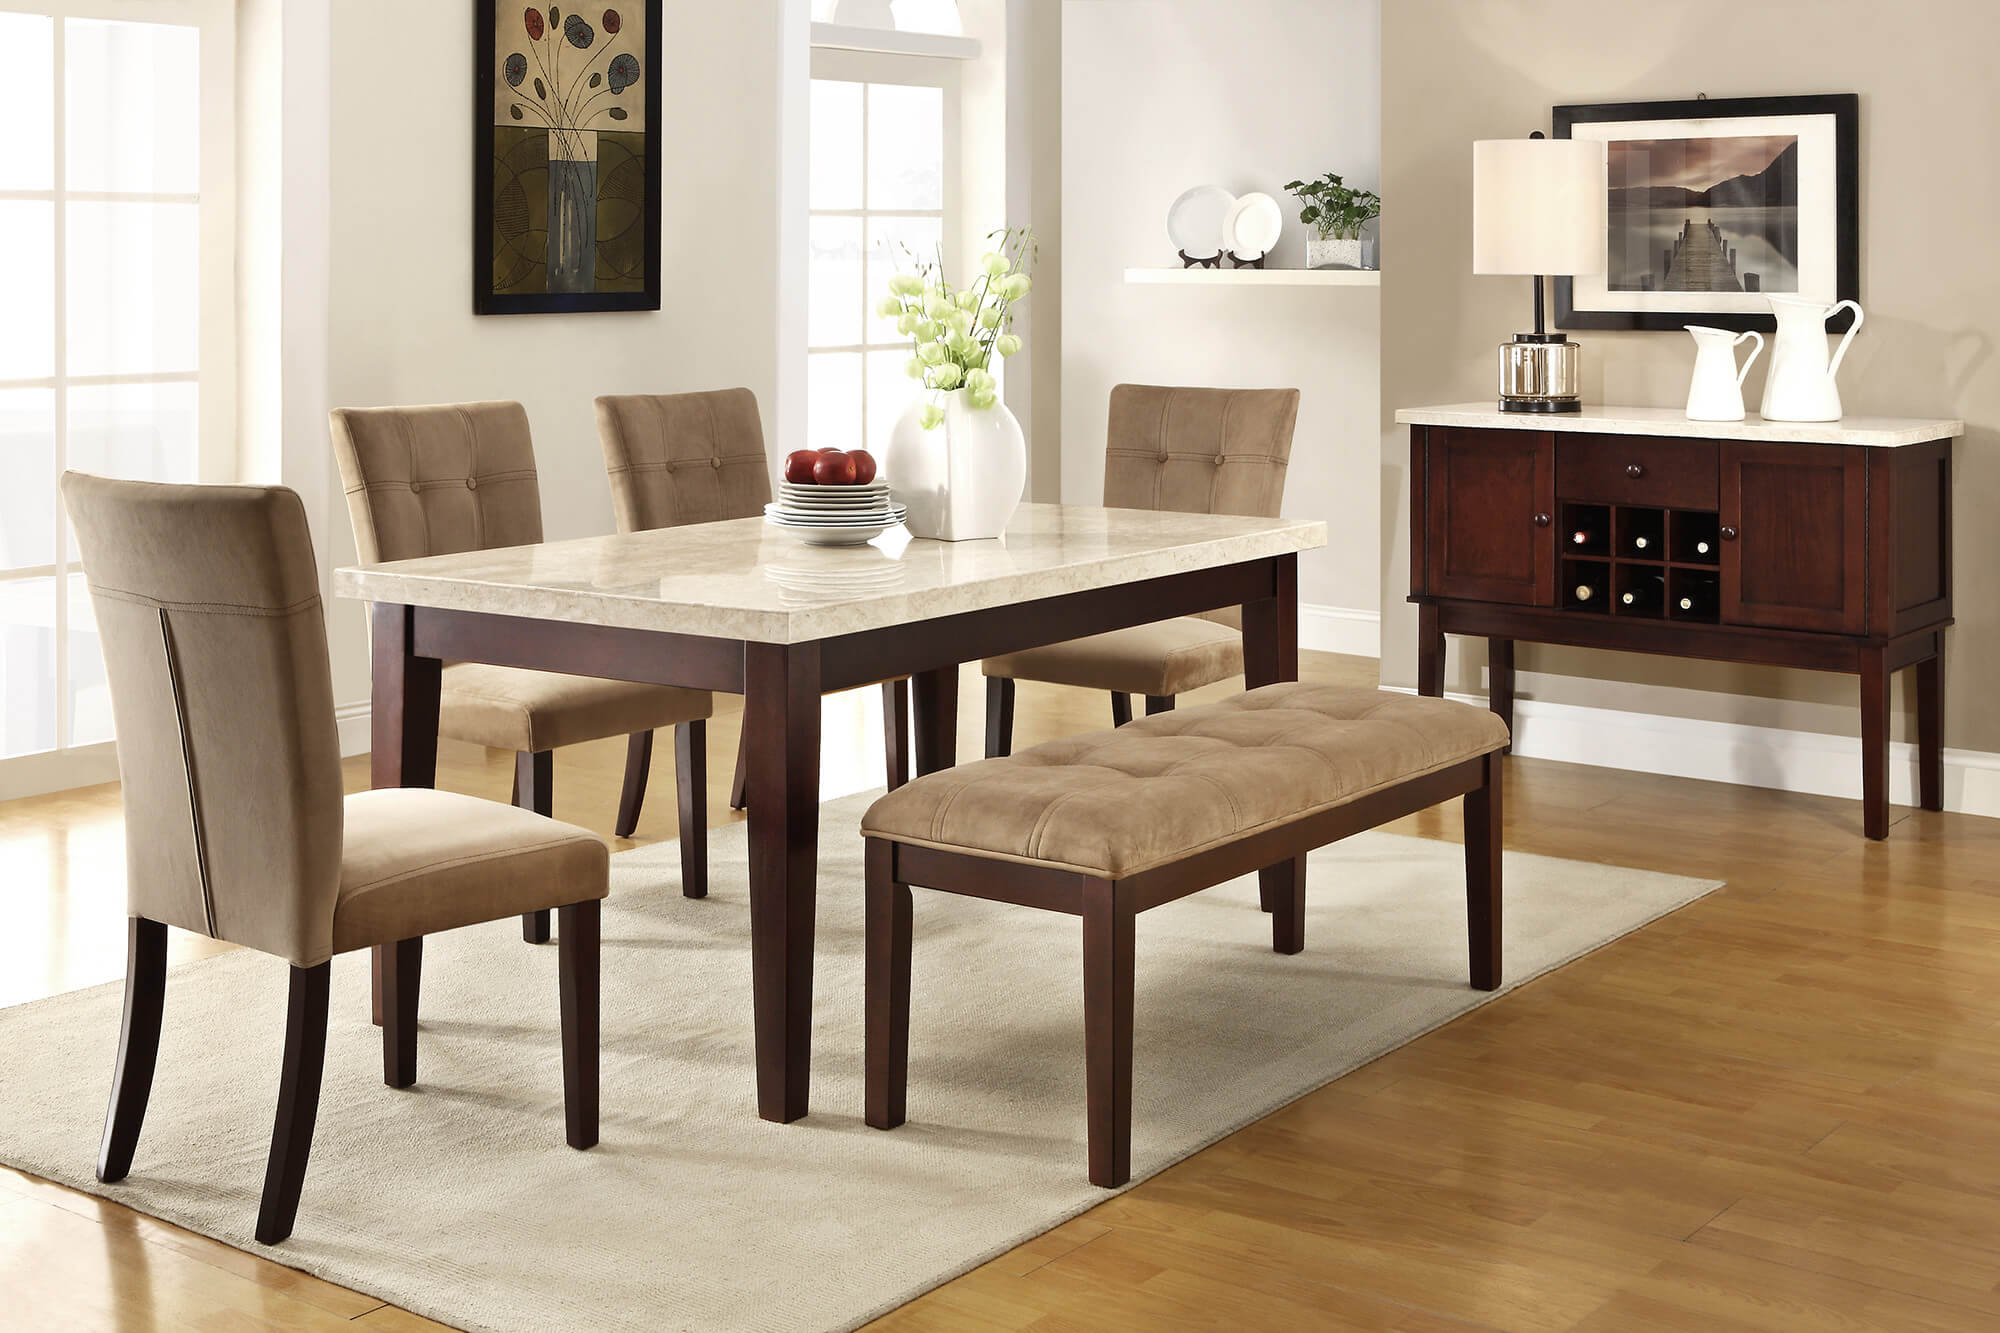 b4ee35874b1c Here's a 6 piece rubberwood dining set with faux marble table top with tan  upholstery for